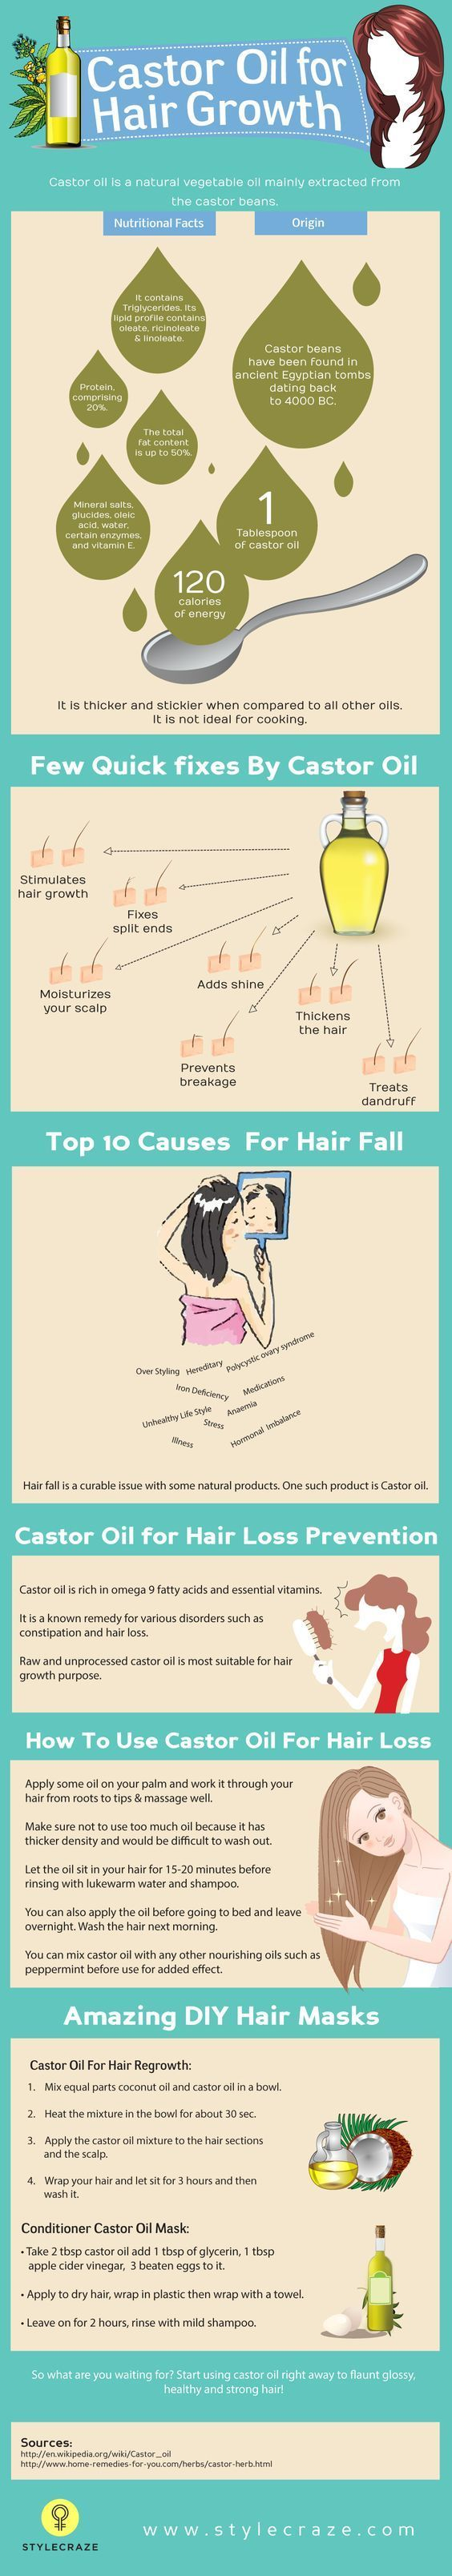 31651 Best Natural Hair Growth Images On Pinterest